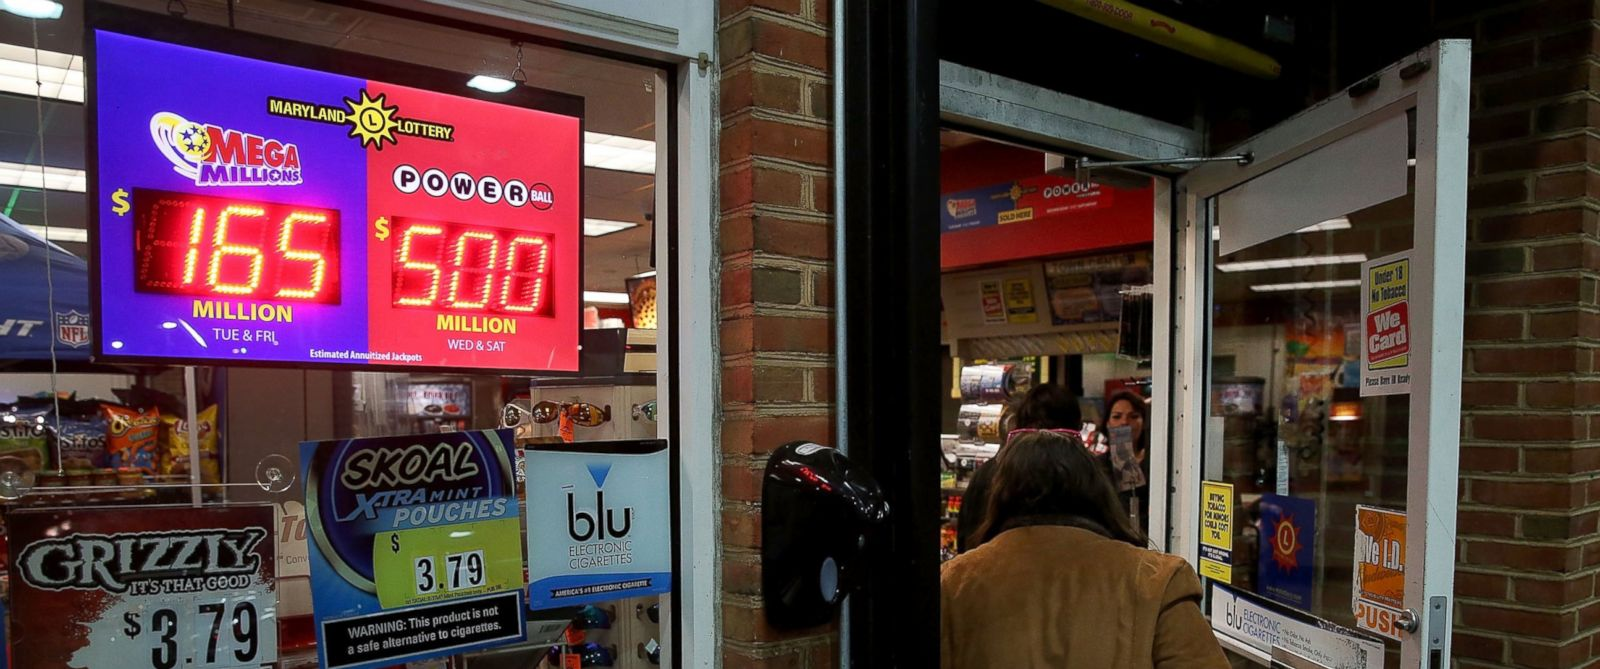 PHOTO: A sign shows the Powerball amount has climbed to 500 million dollars at the BP gas station, Jan. 6, 2015 in Dunkirk, Maryland.